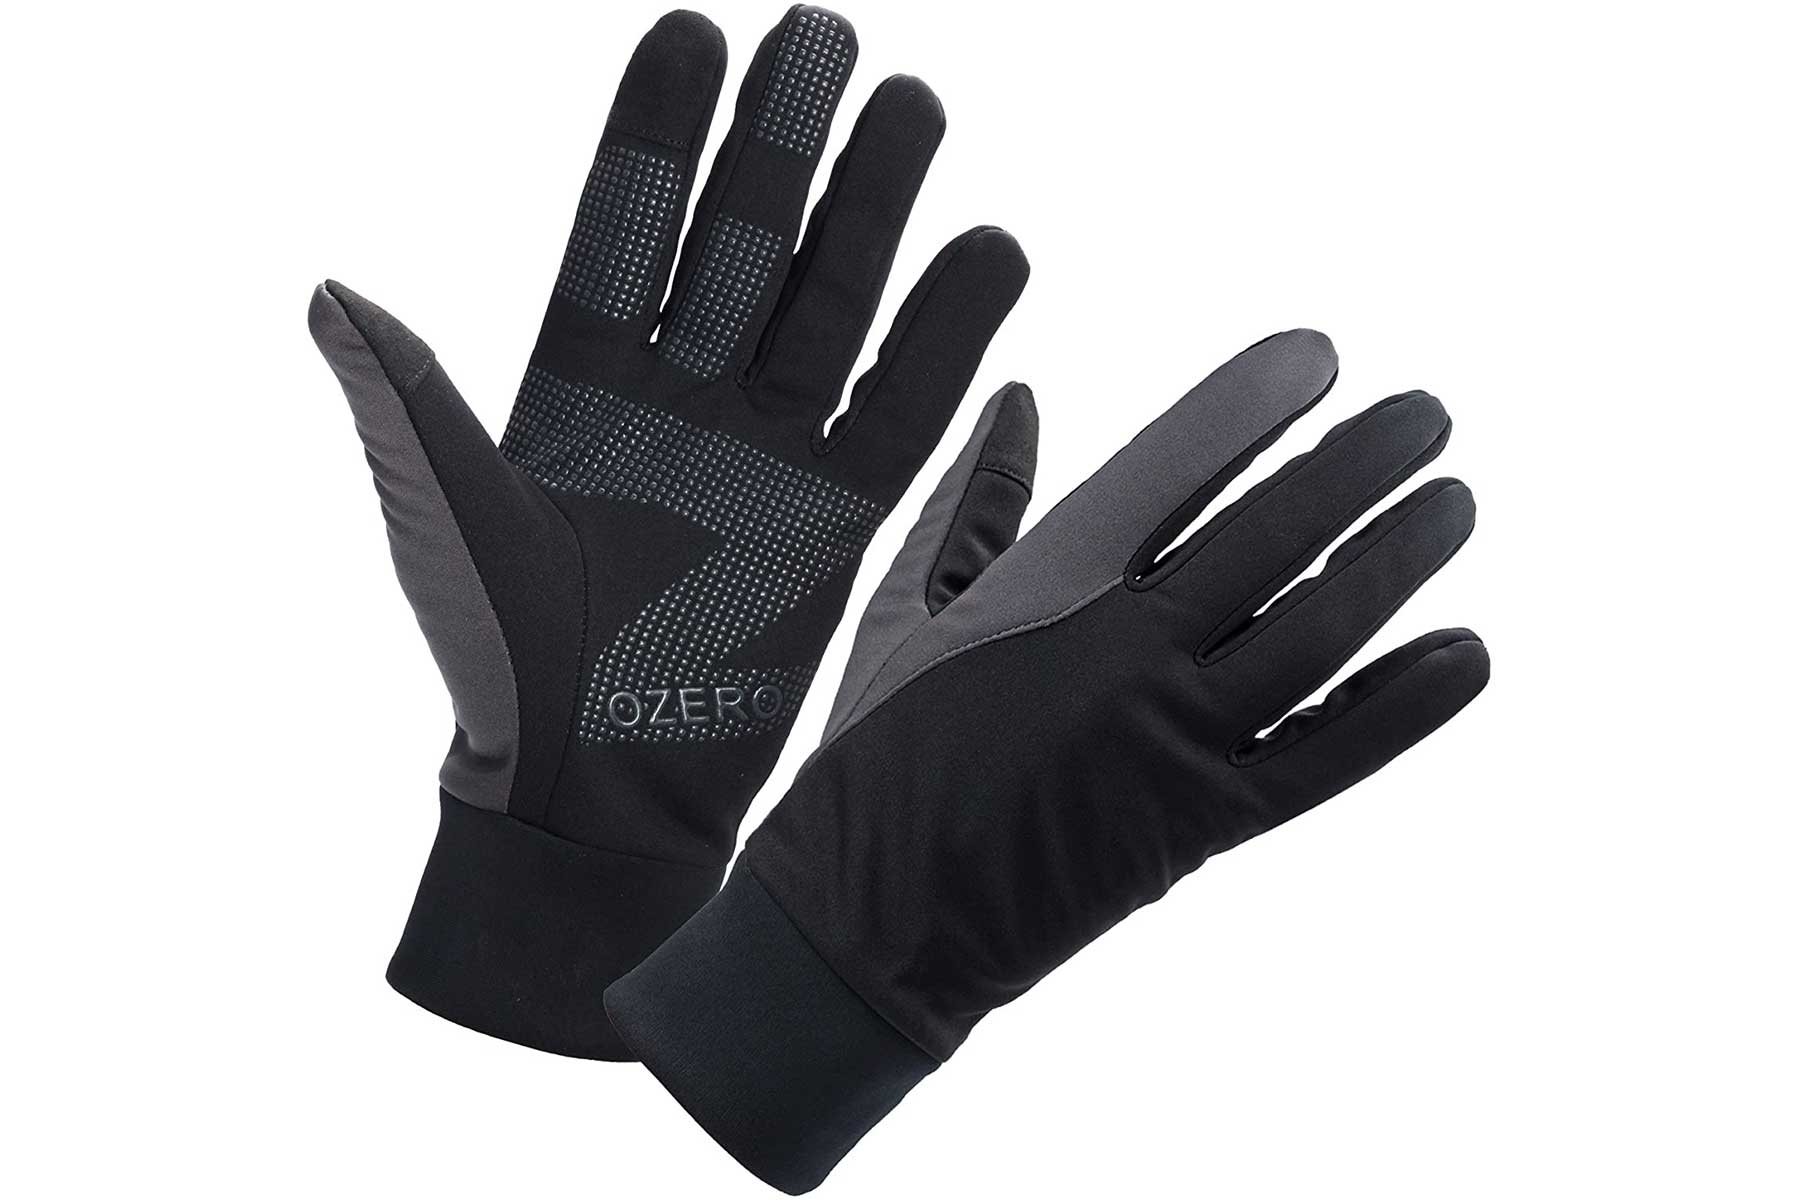 Ozero touch screen gloves black and grey